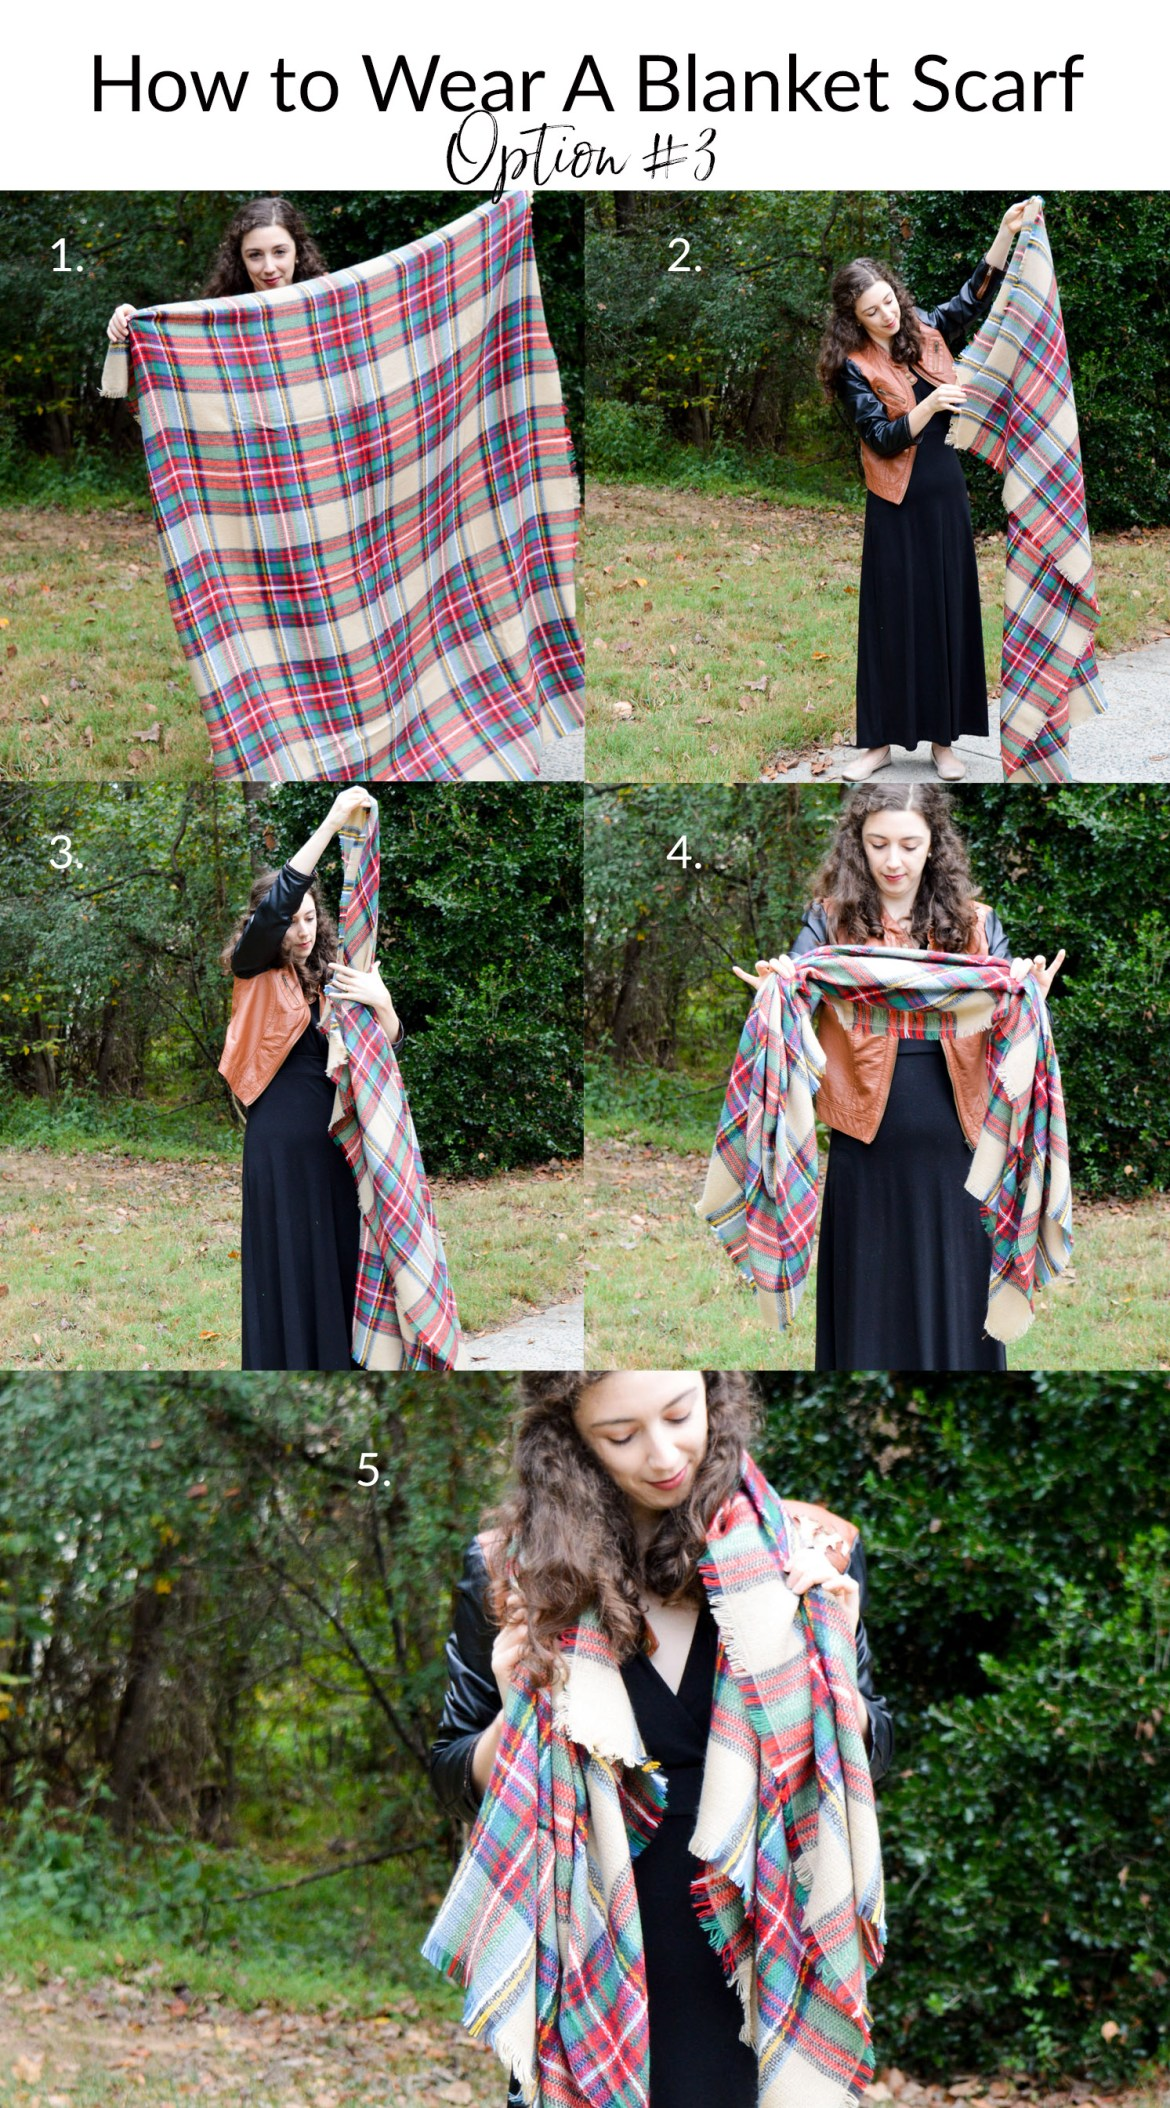 Step-by-Step Photo Tutorial - How to Wear a Blanket Scarf